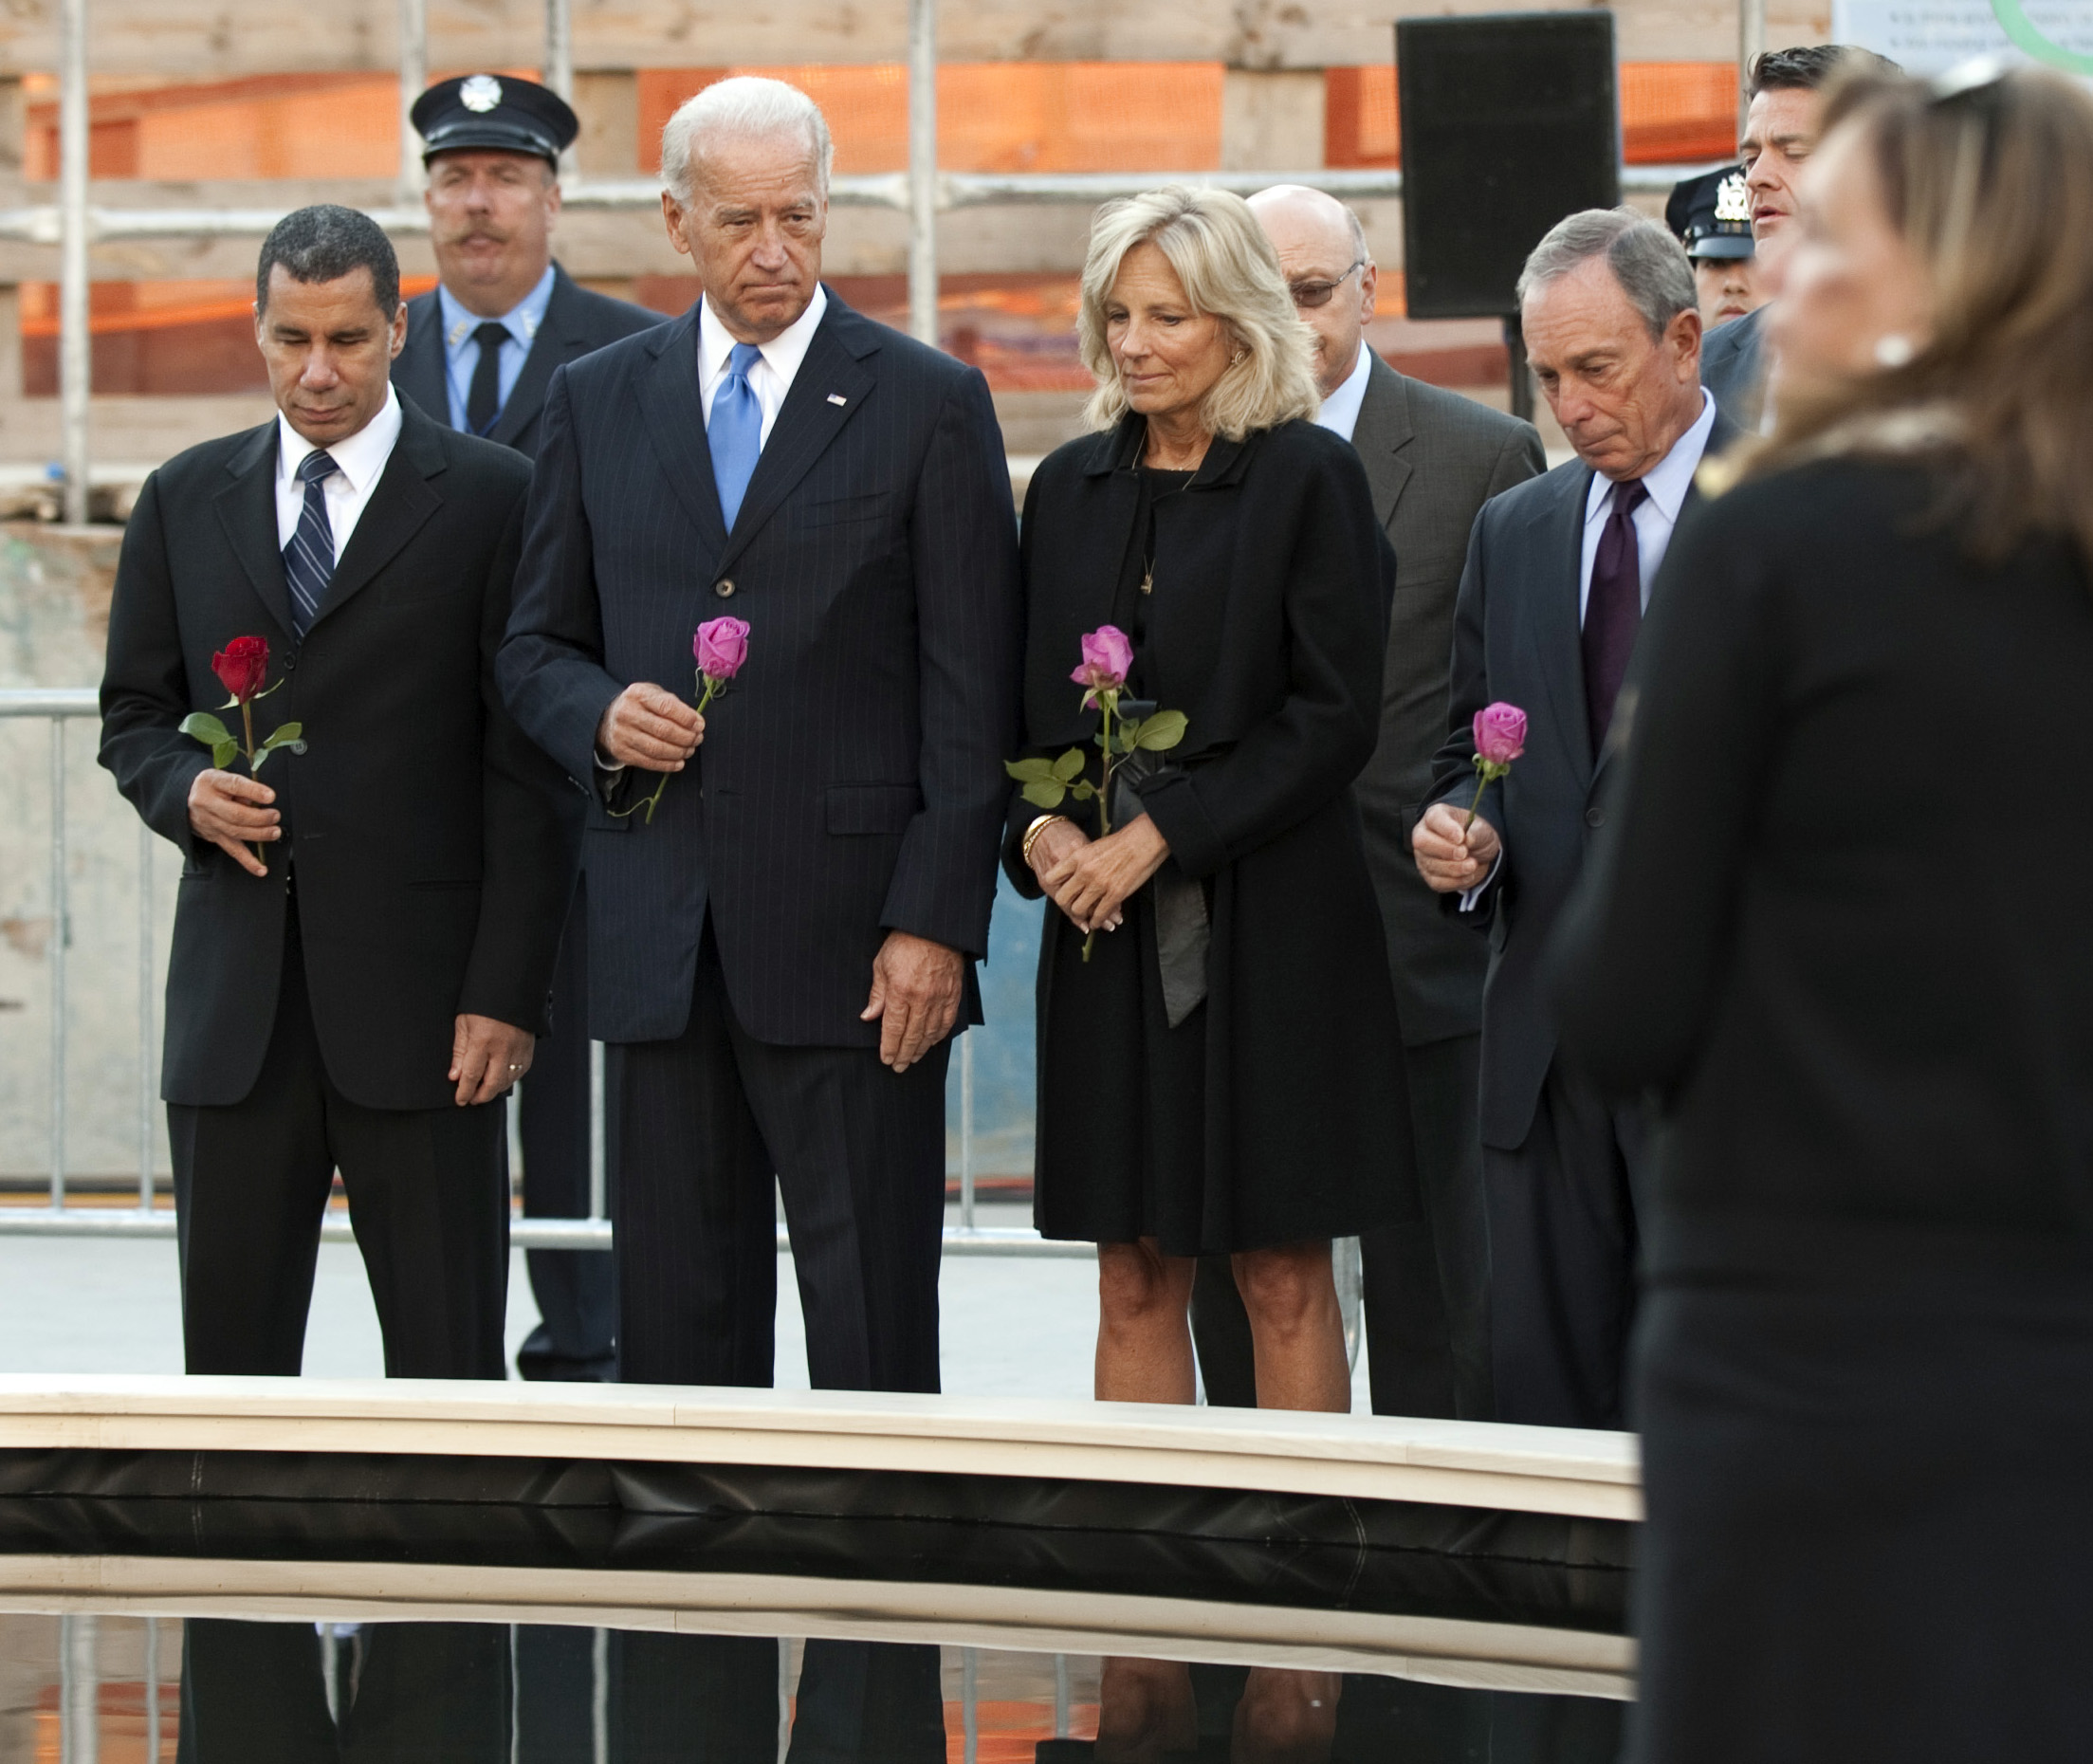 US Vice President Joe Biden (2nd L) and his wife Dr. Jill Biden (2nd R), with New York Governor David Paterson (L) and New York City Mayor Michael Bloomberg,e place flowers at the relecting pool at the World Trade Center site on September 11, 2010 in New York for the ninth anniversary commemoration ceremony of the terrorist attacks. POOL/DON EMMERT (Photo credit should read DON EMMERT/AFP via Getty Images)